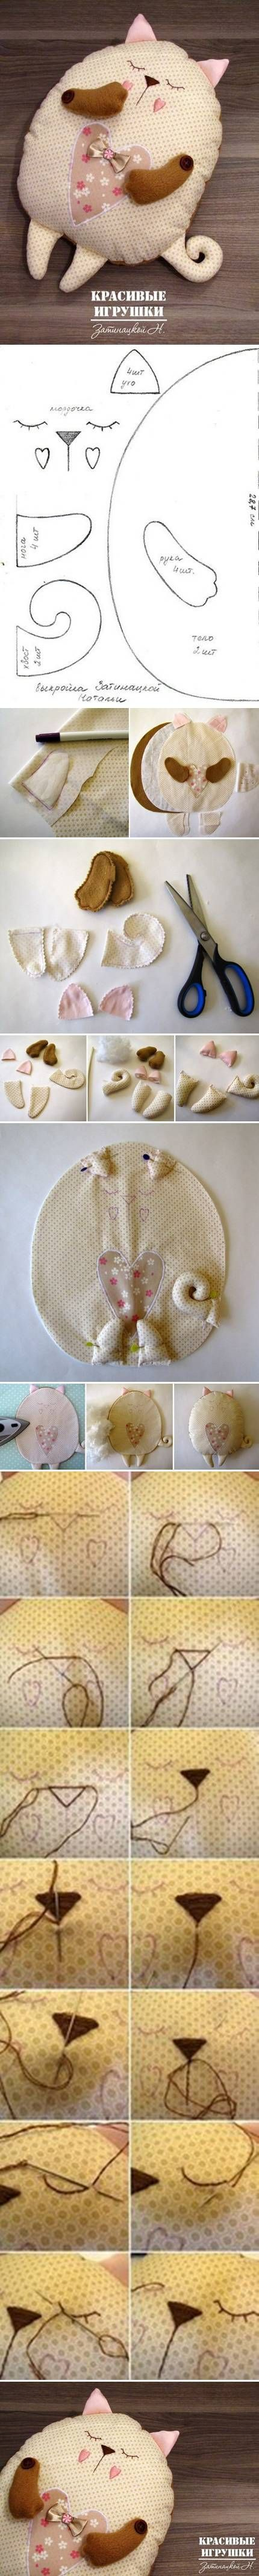 DIY Soft Sew Fabric Cat |  this would be cute with a big pocket on the back for a little girl to tuck her pajama's inside in the mornings when she changes into her play clothes.